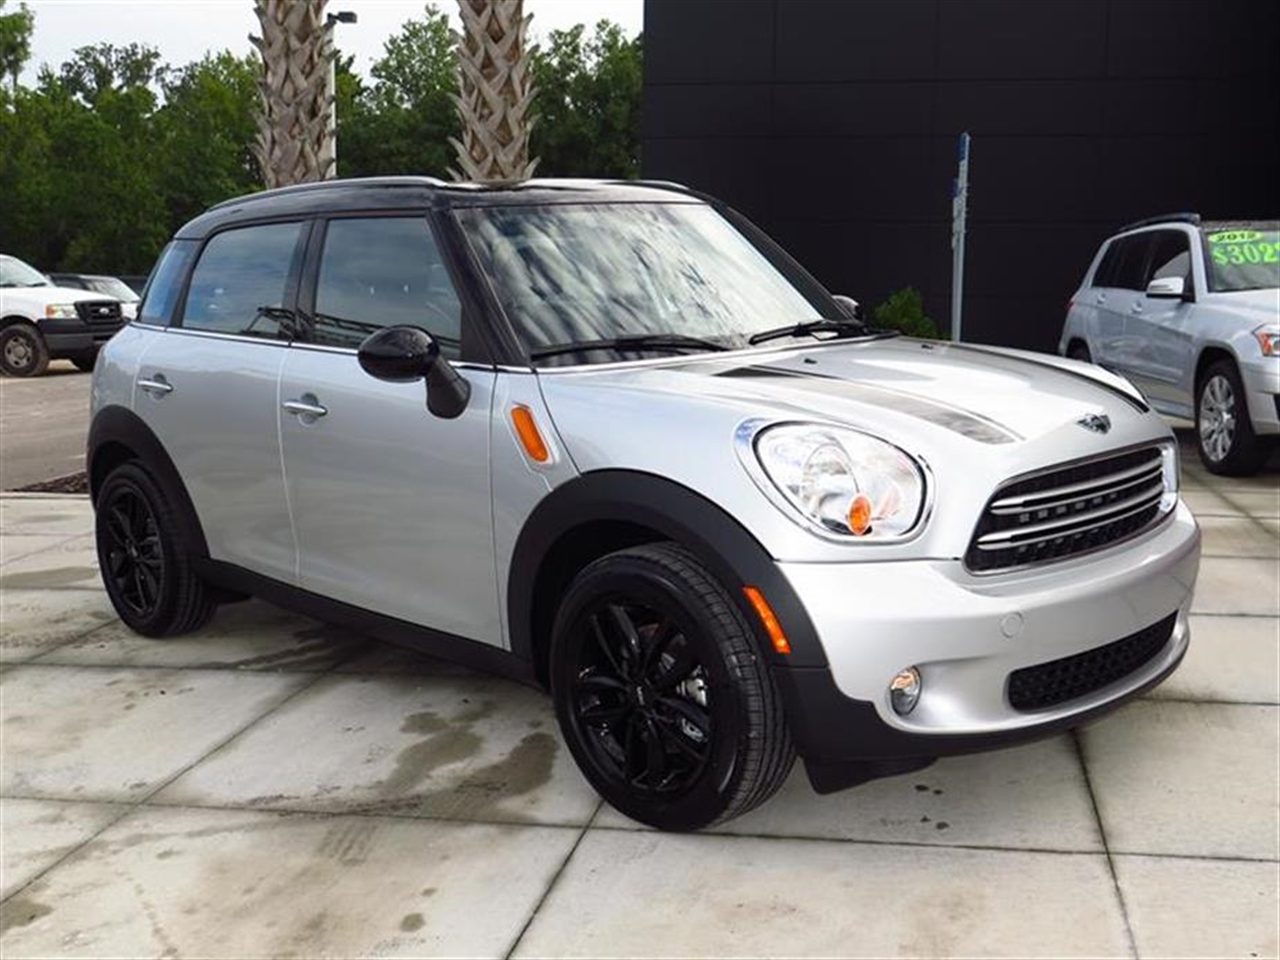 2015 MINI COOPER COUNTRYMAN FWD 4dr 0 miles 2 Seatback Storage Pockets 3 12V DC Power Outlets LE